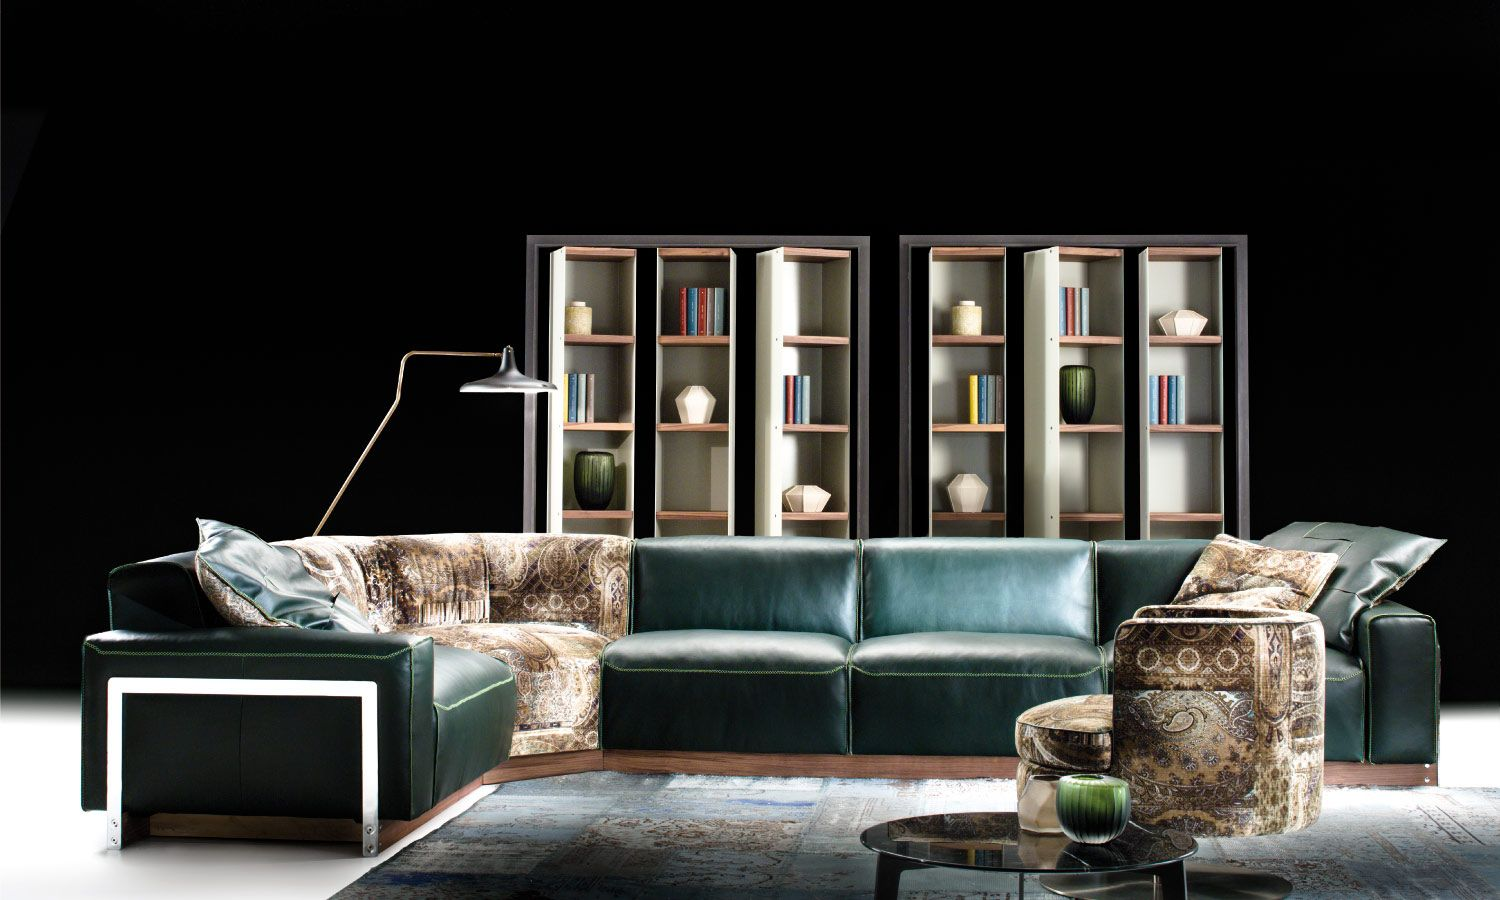 aston sectional by borzalino enriched with fabric from fashion rh pinterest com